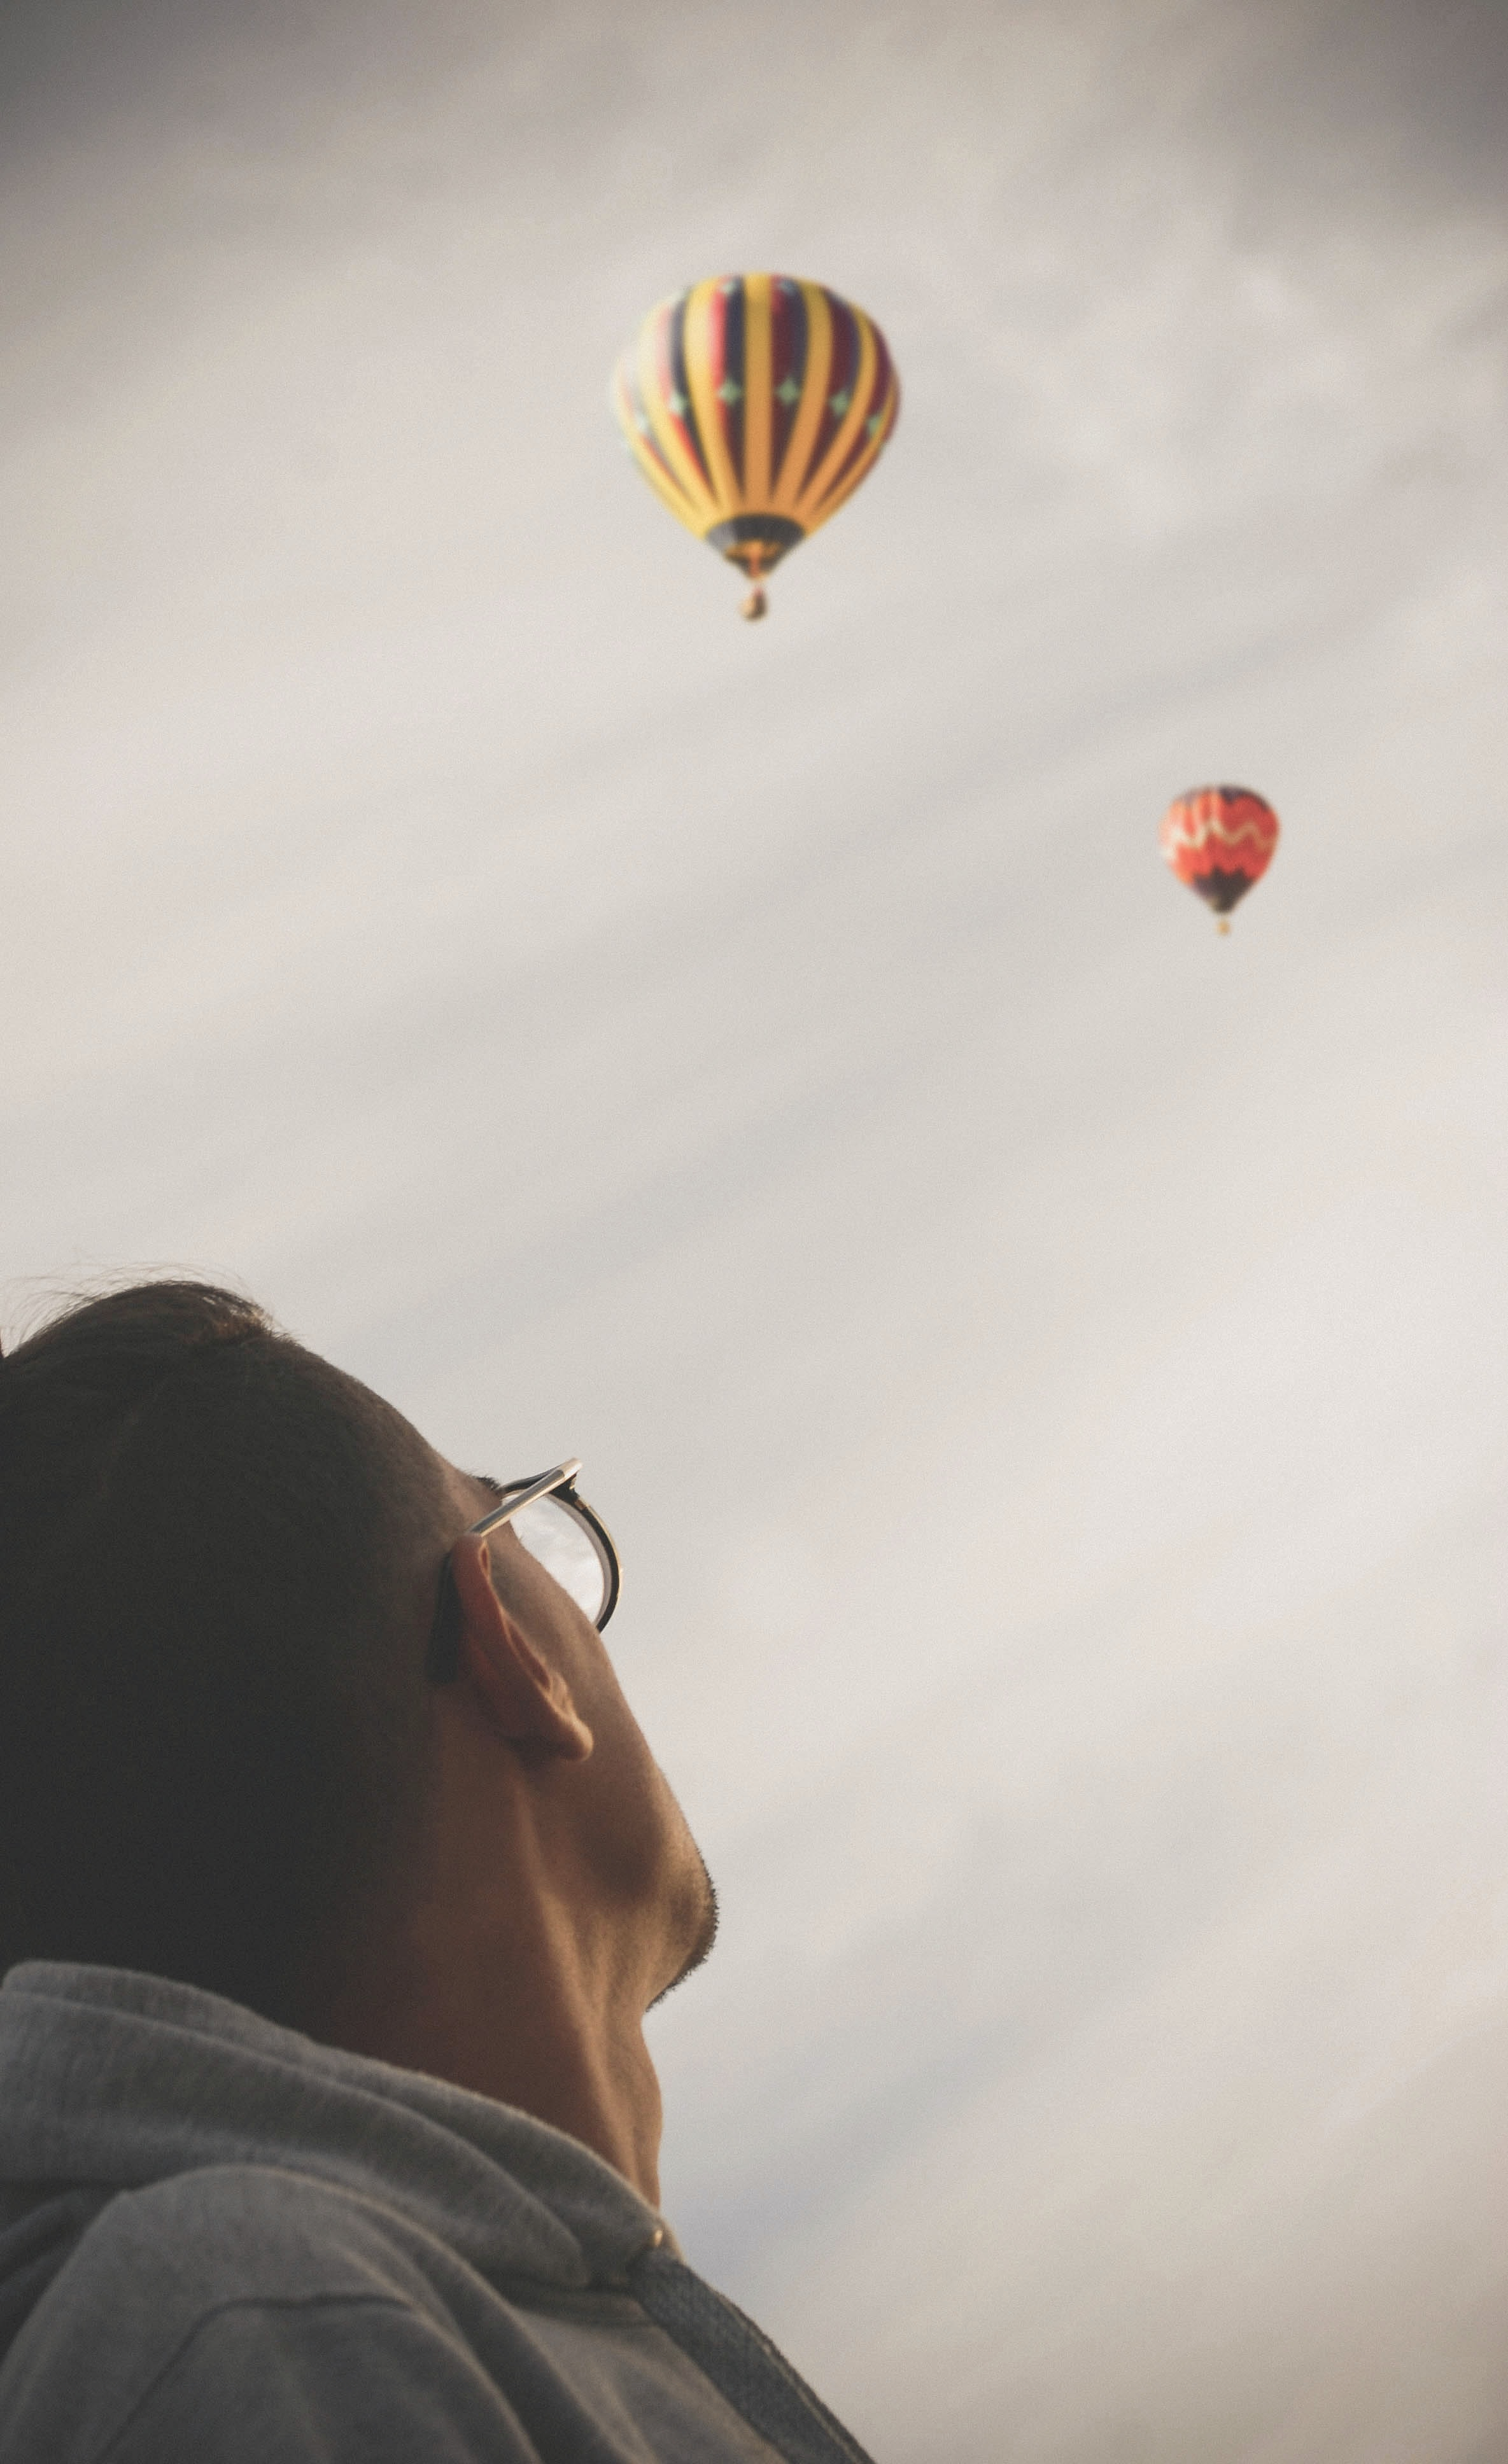 man looking at two hot air balloons in the sky